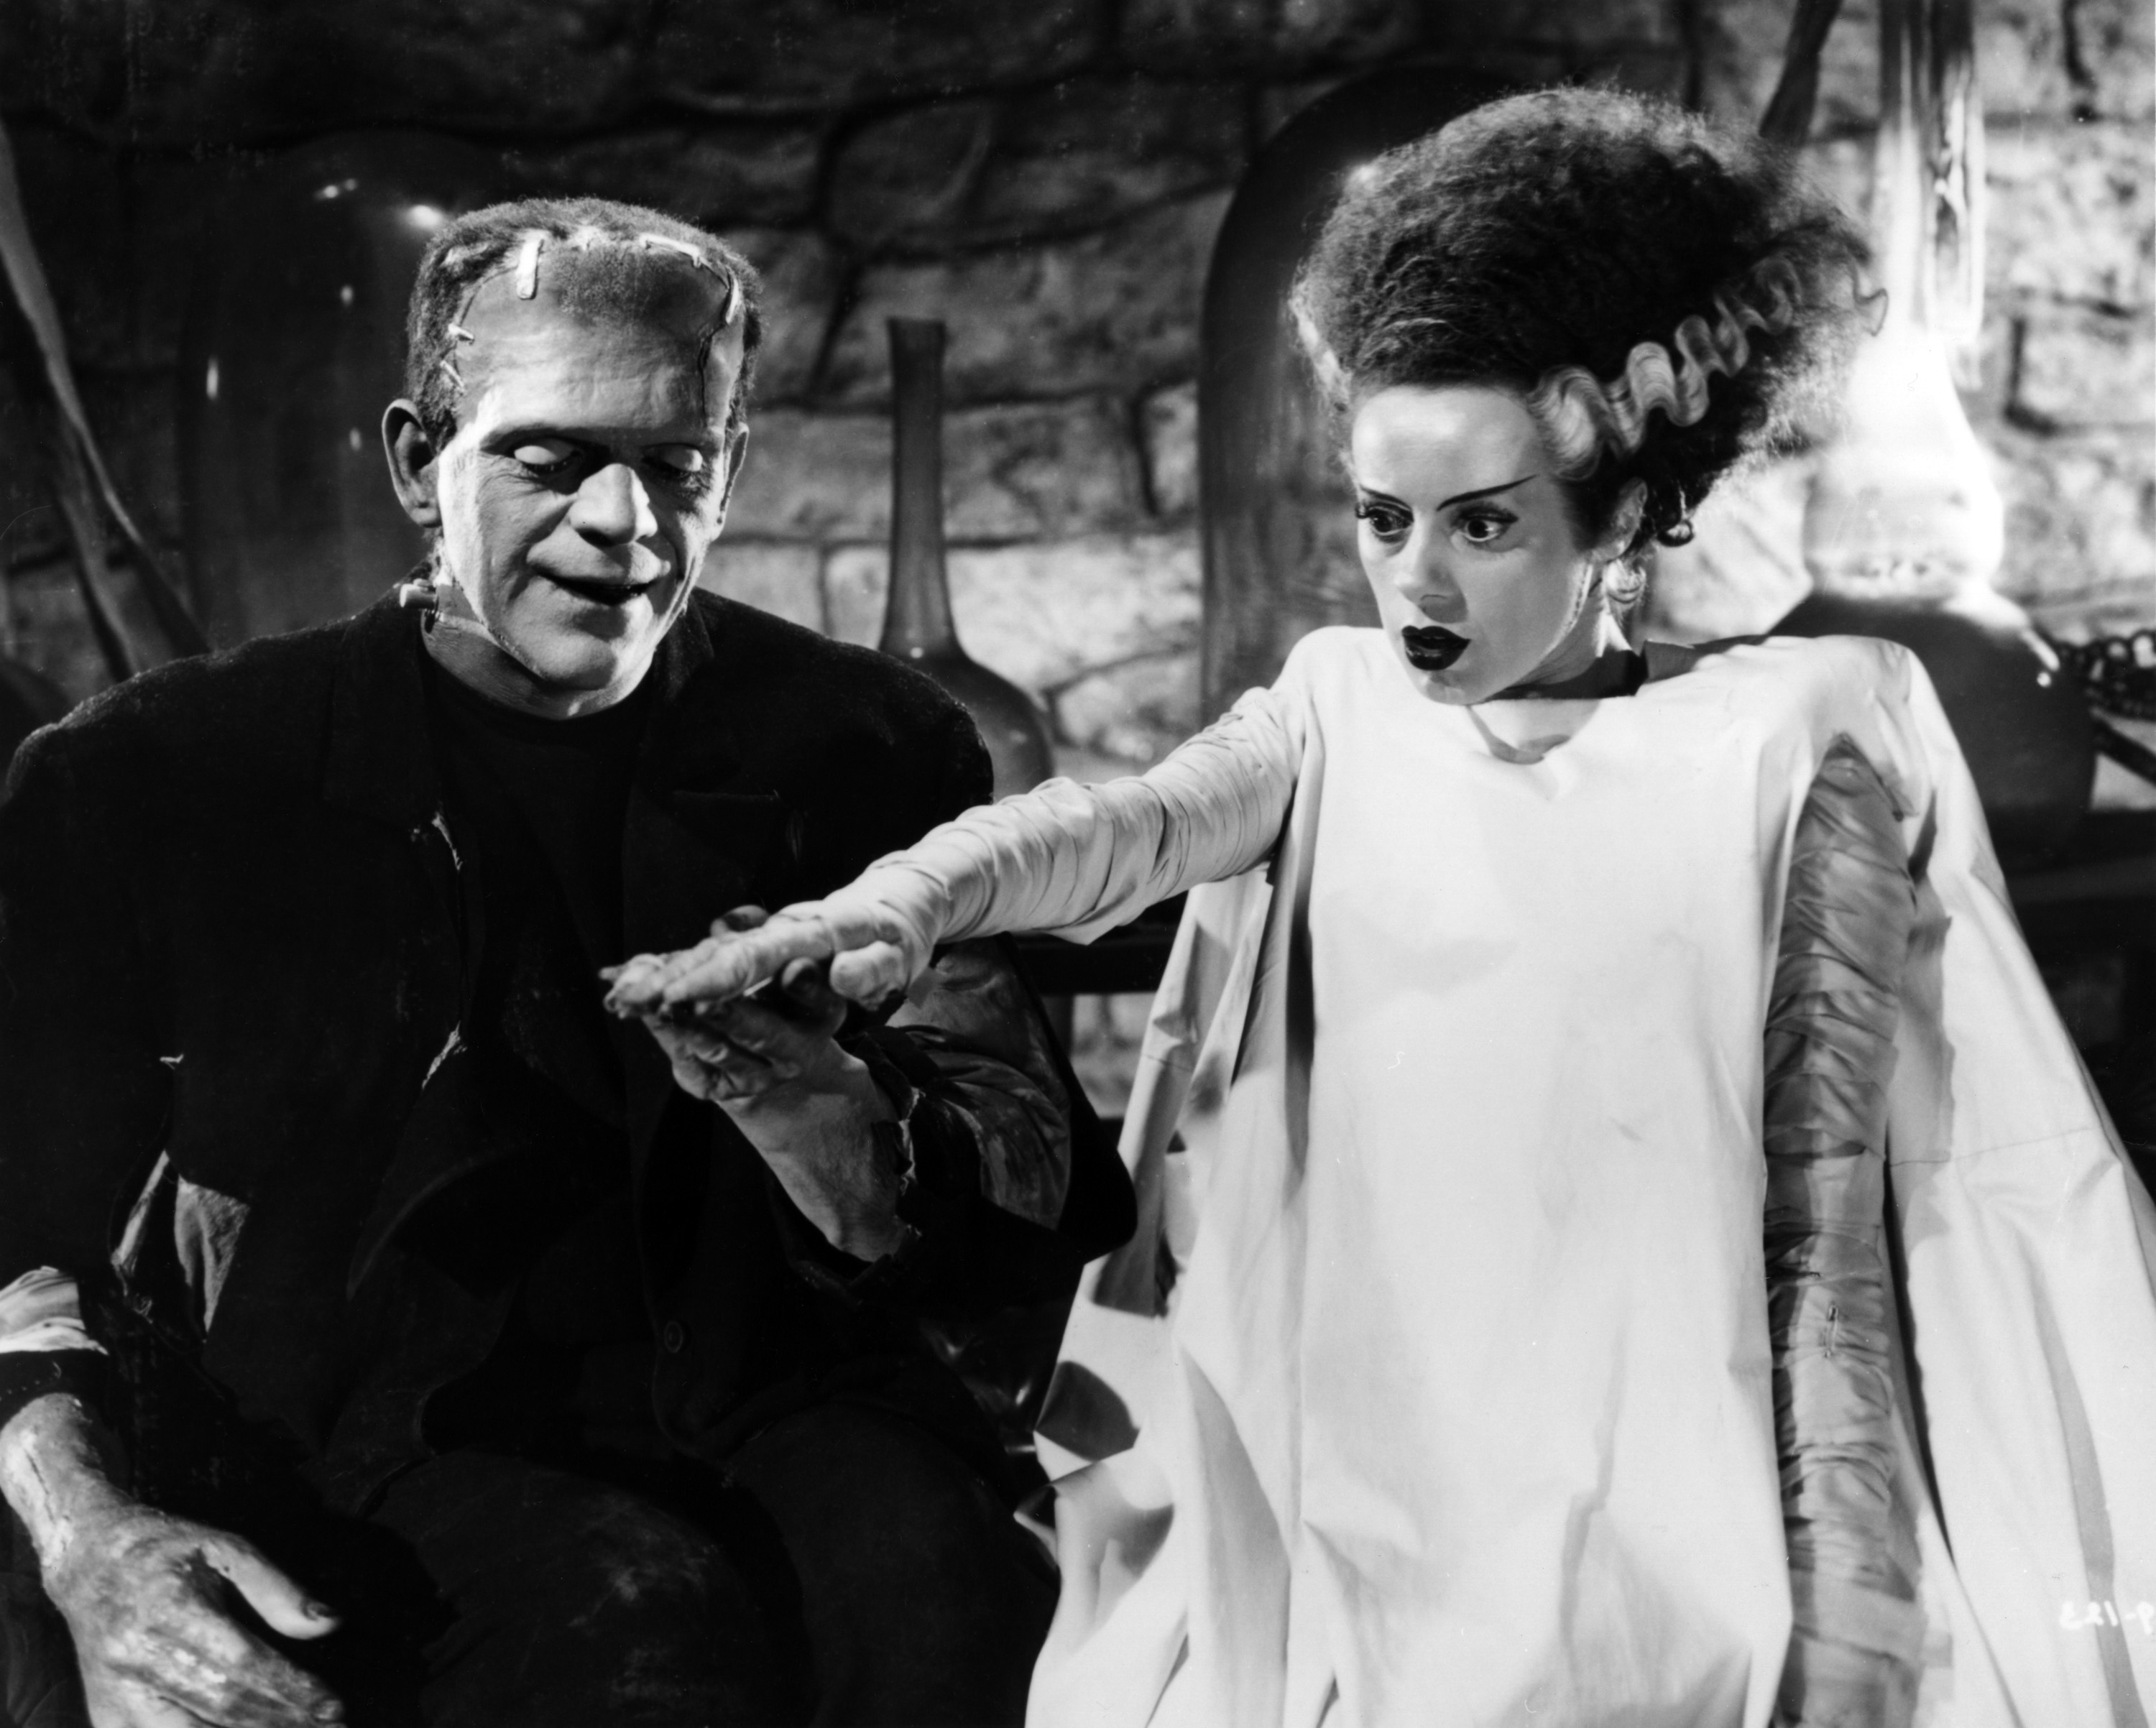 The Monster (Boris Karloff) and the Bride (Elsa Lanchester) in Bride of Frankenstein (1935)